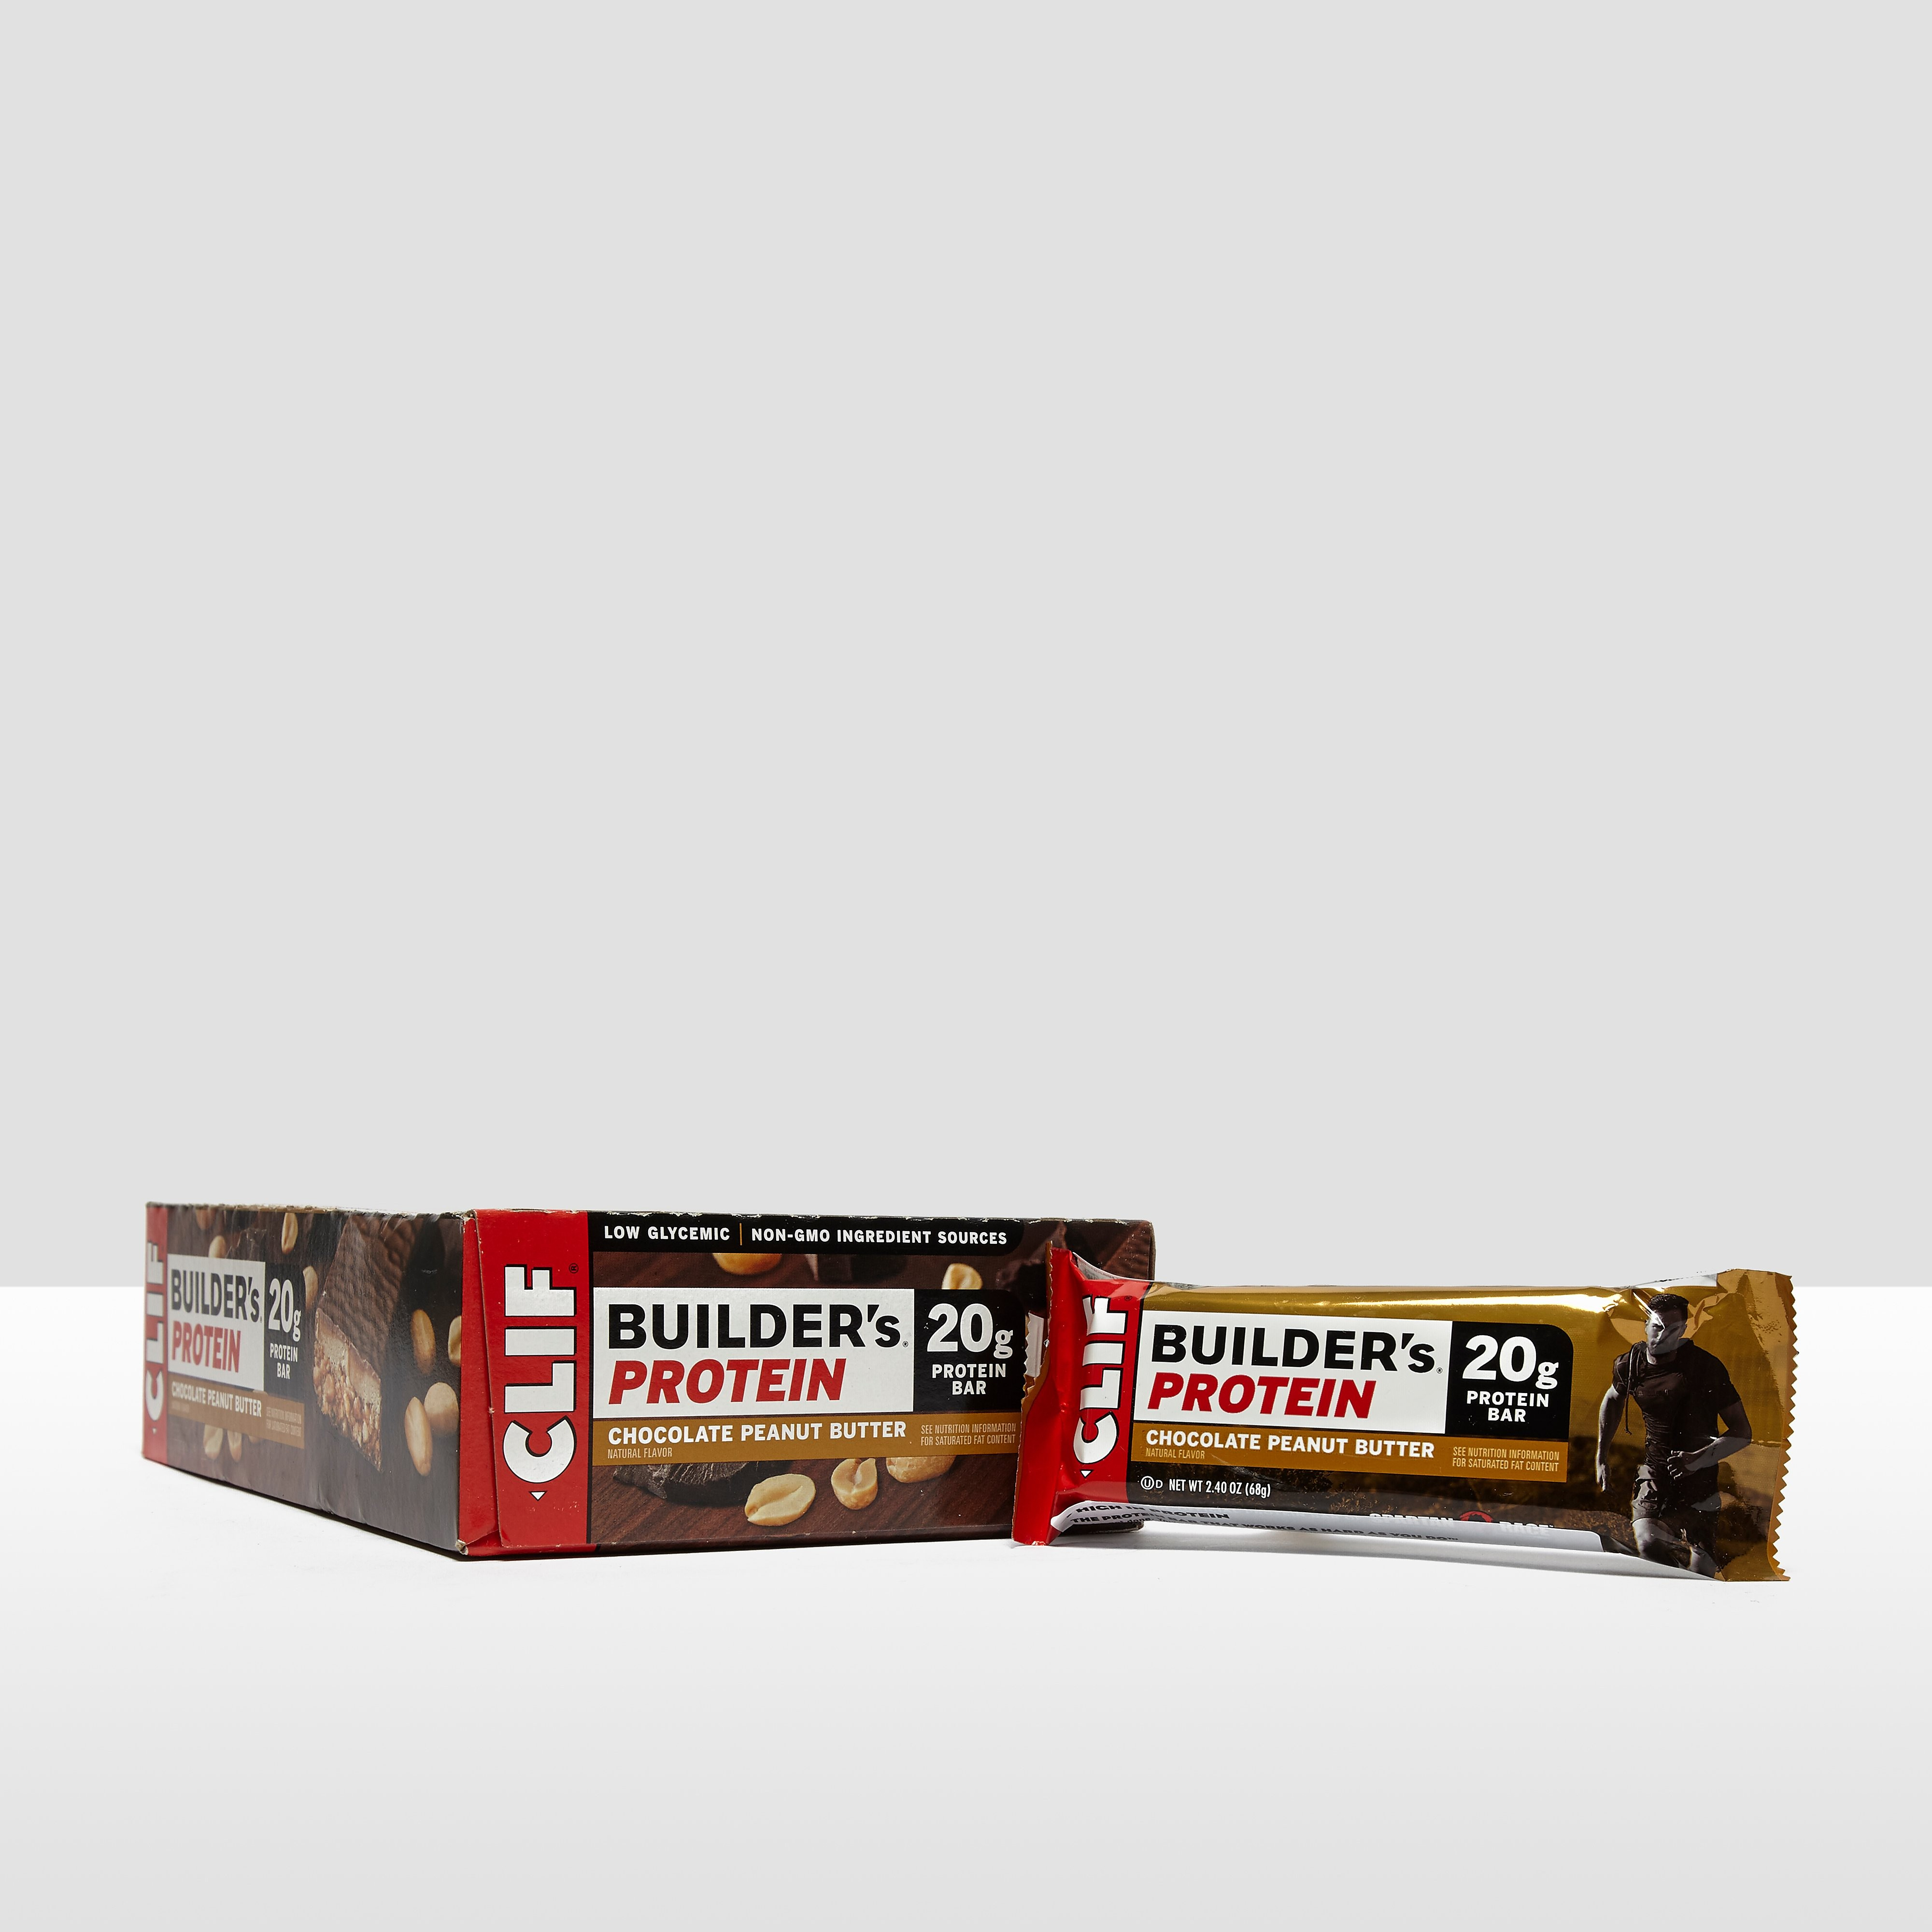 Unnu Builder's Protein Bar (12 Pack) - Chocolate Peanut Butter